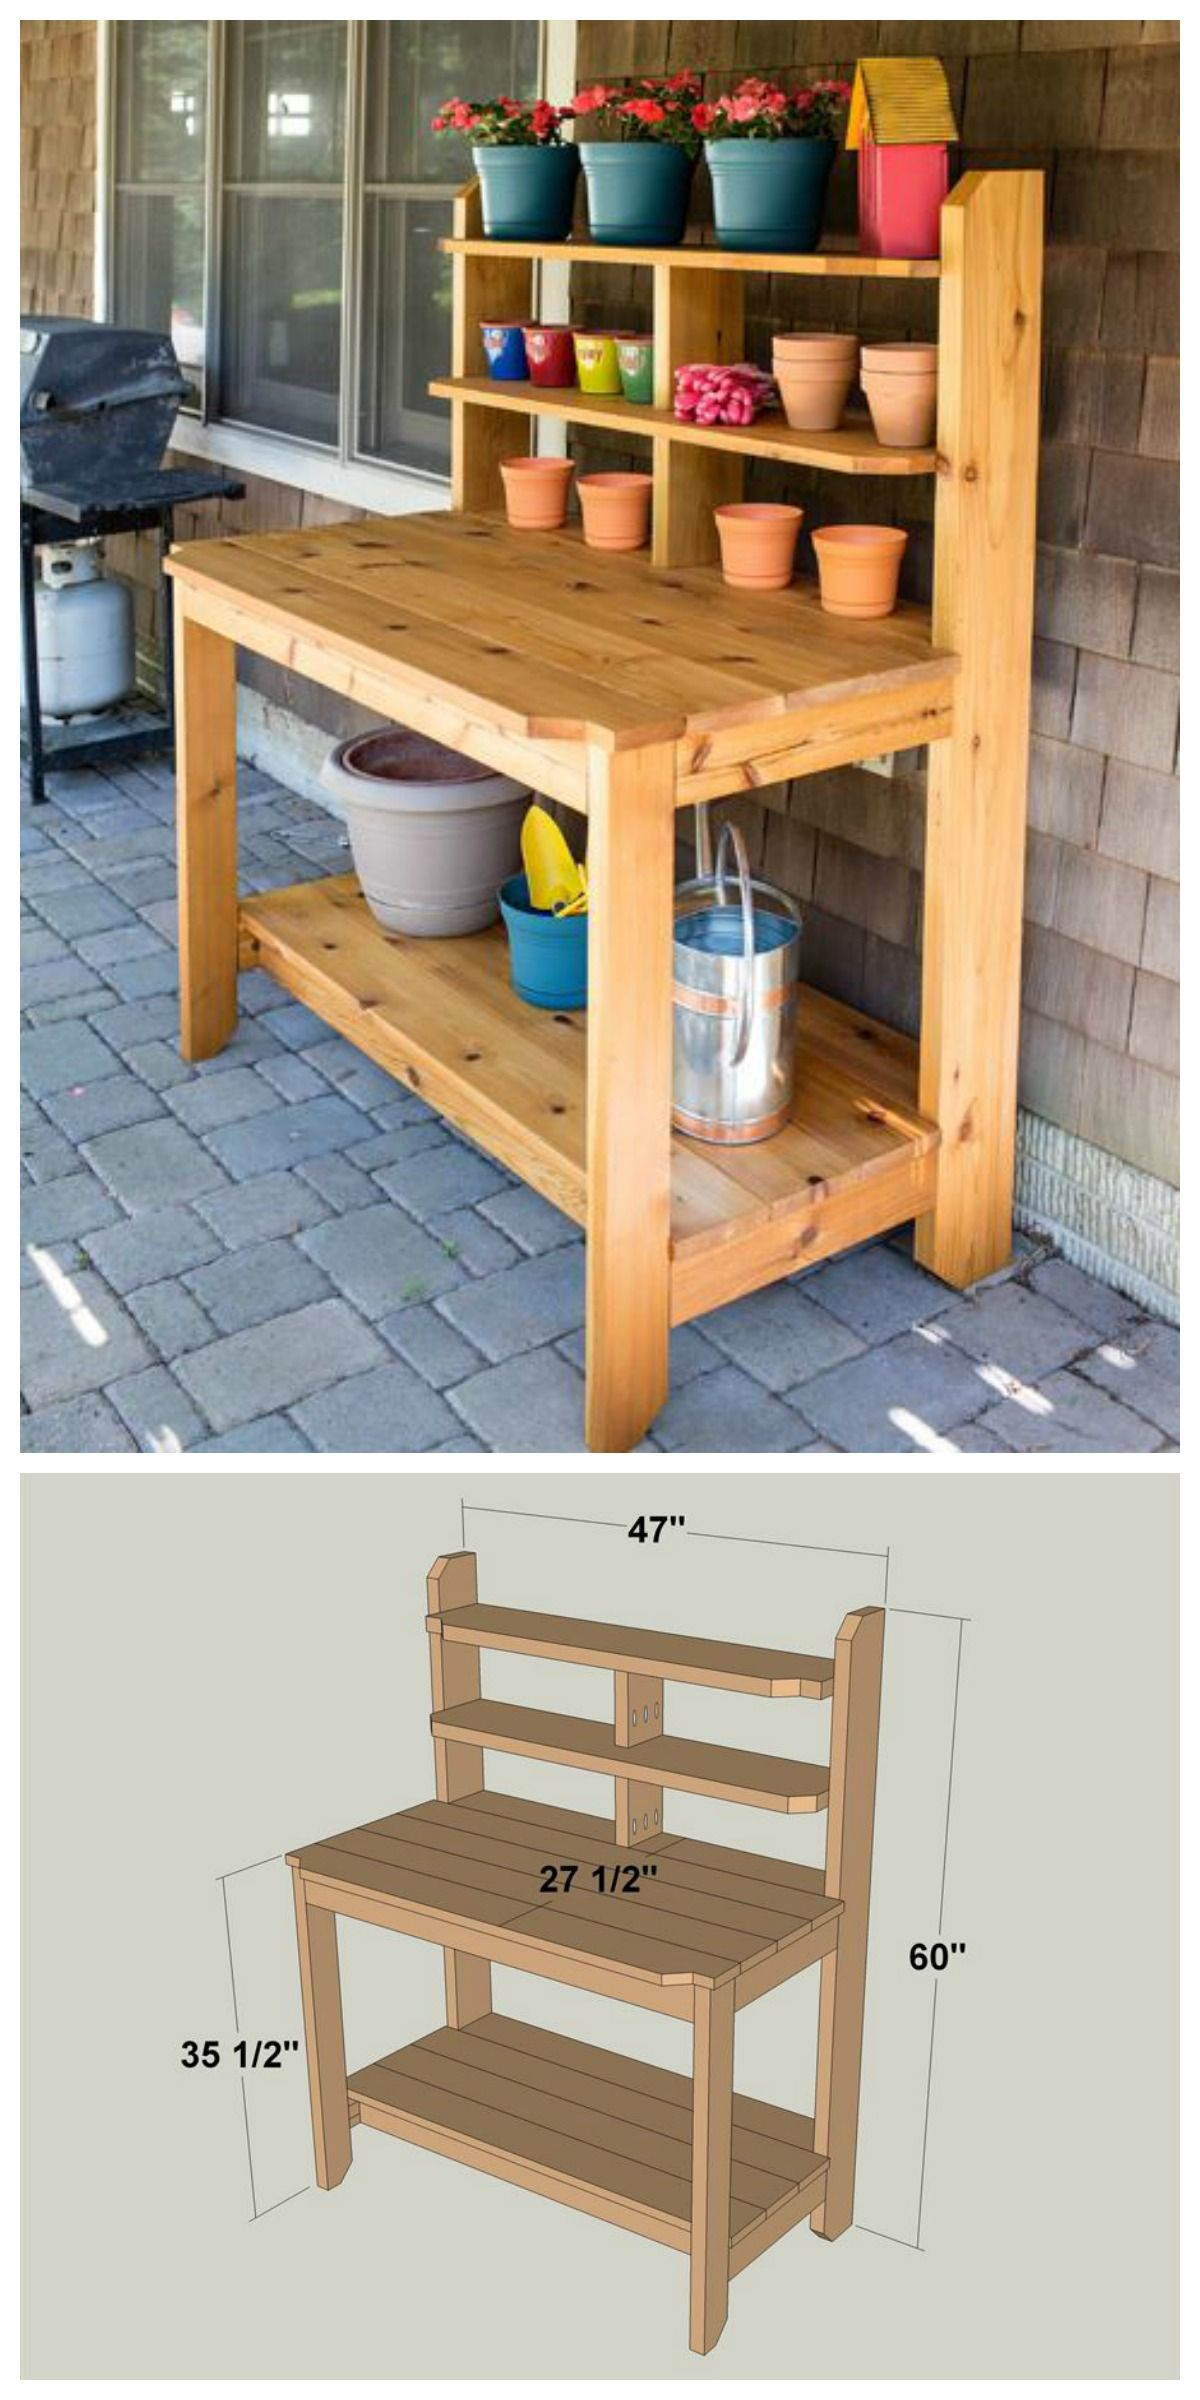 Diy how to build a shed bench free and gardens for Potting shed plans diy blueprints